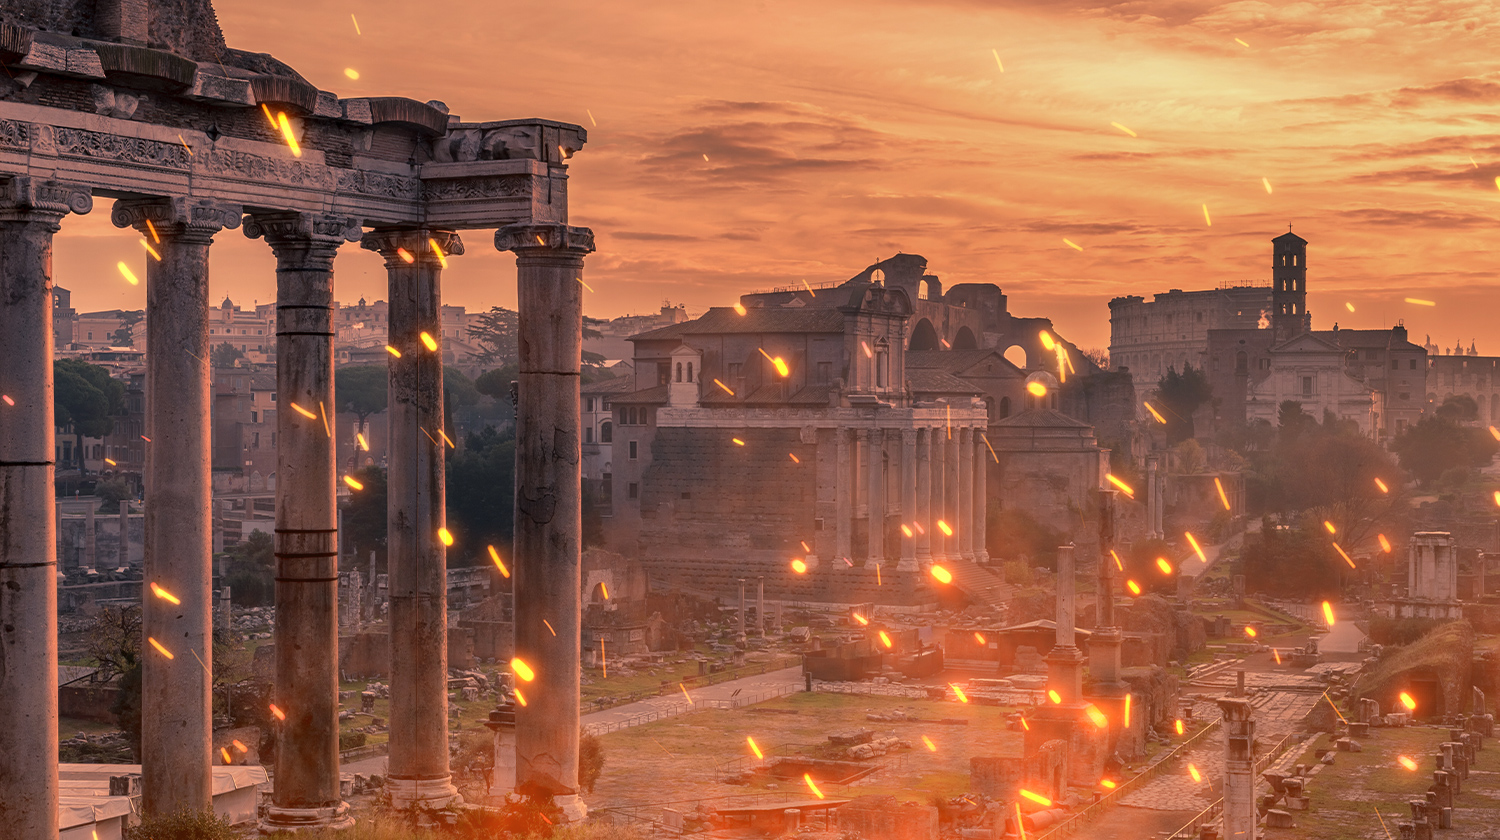 Prophecy Experience - Rome is Rising From the Ashes Just as Scripture Predicted